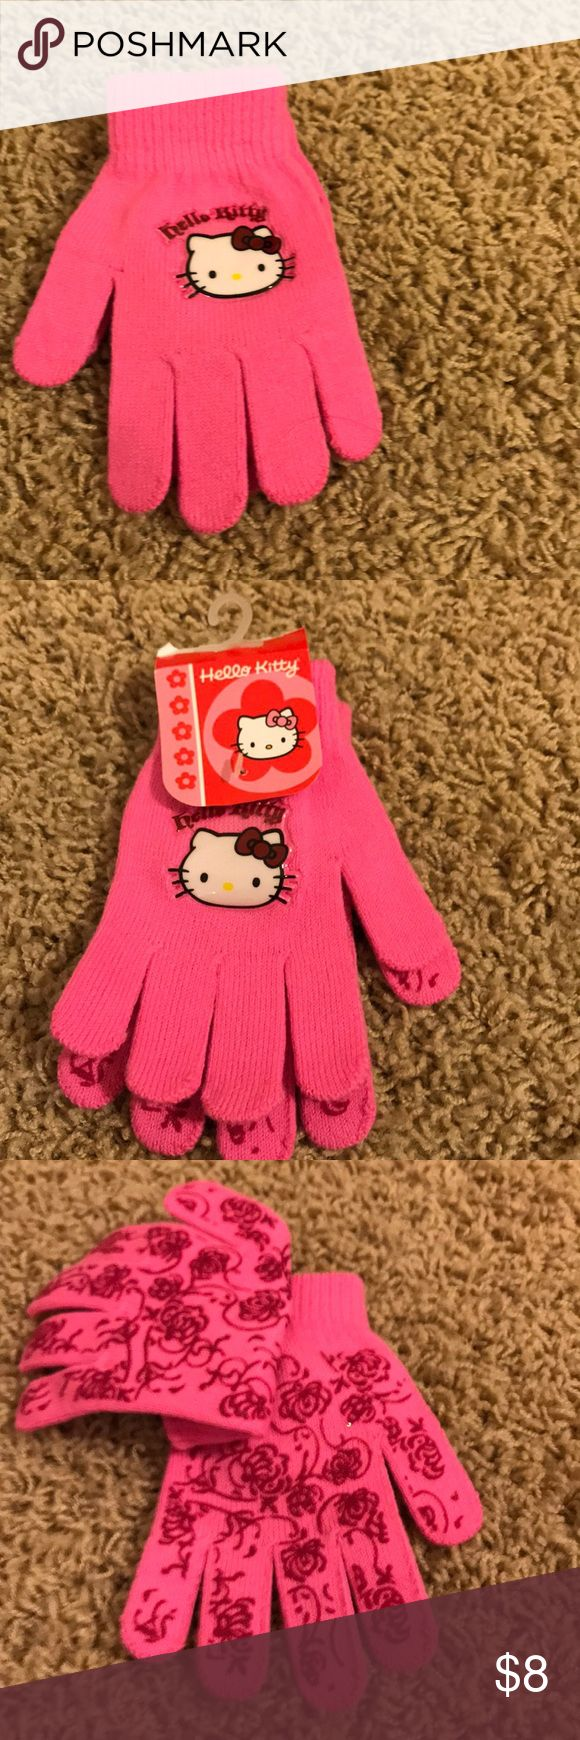 Hello Kitty girls gloves Brand new Hello Kitty pink gloves. Perfect for those chilly days. Accessories Mittens